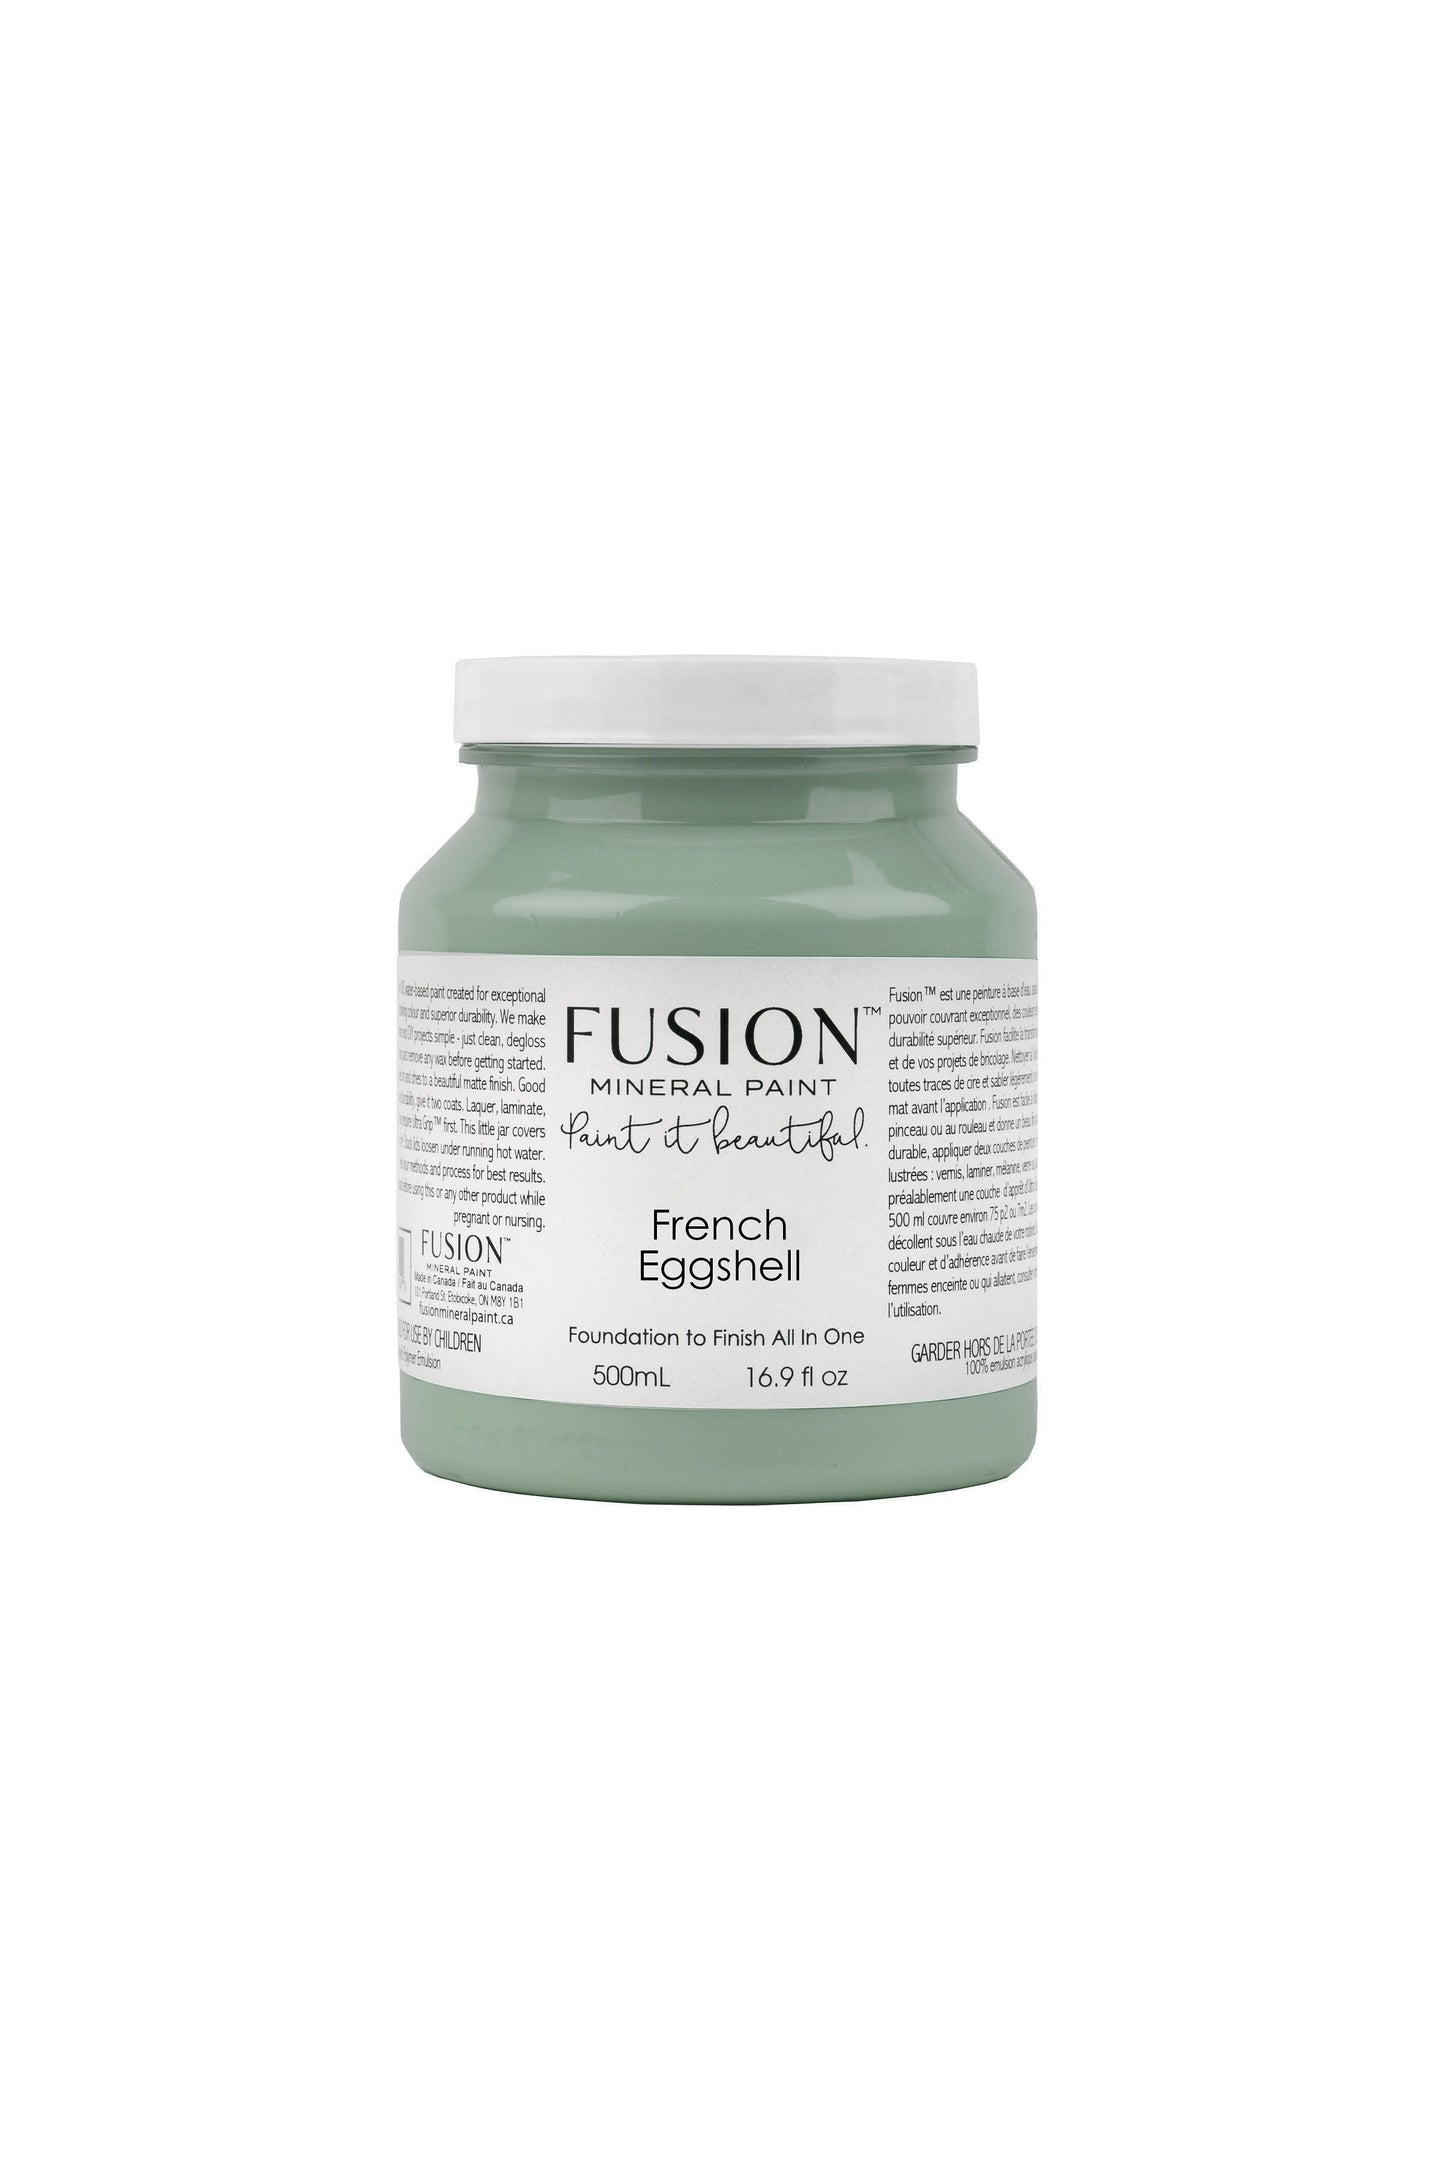 French Eggshell FUSION Mineral Paint - Furniture Paint